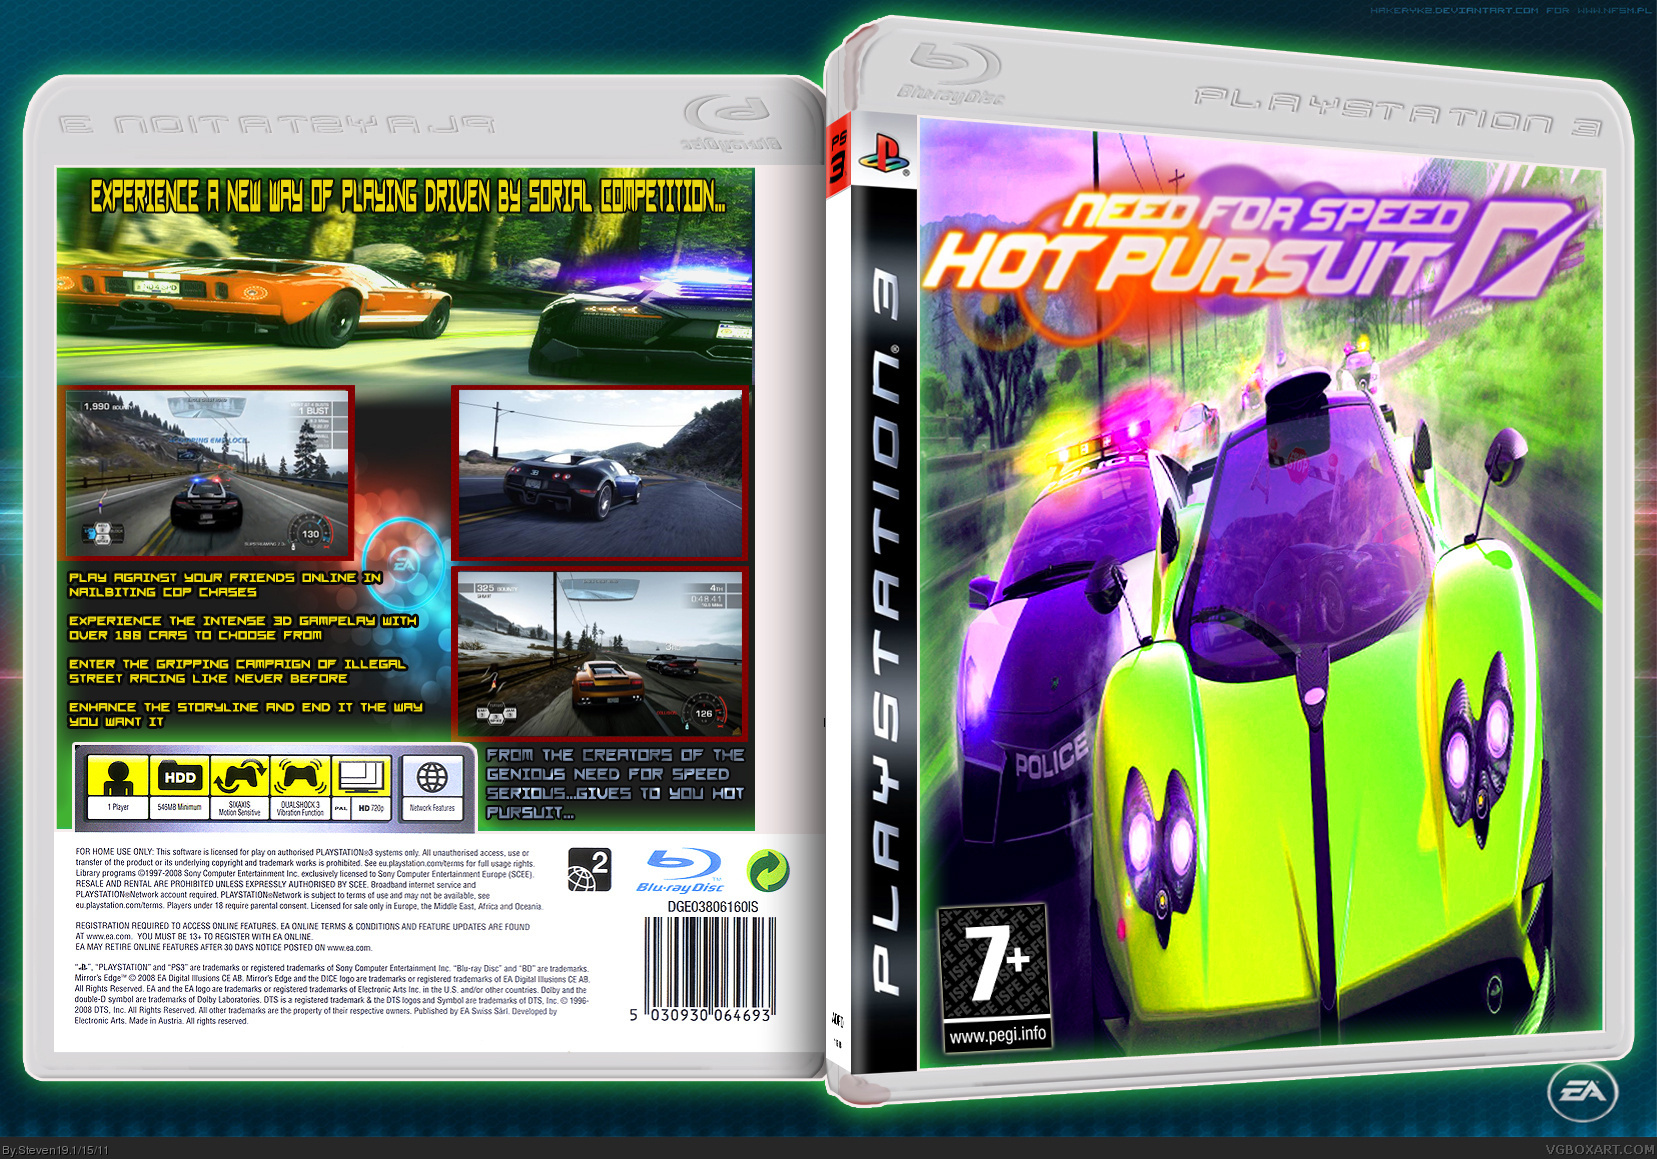 Need For Speed Hot Pursuit Playstation 3 Box Art Cover By Steven19